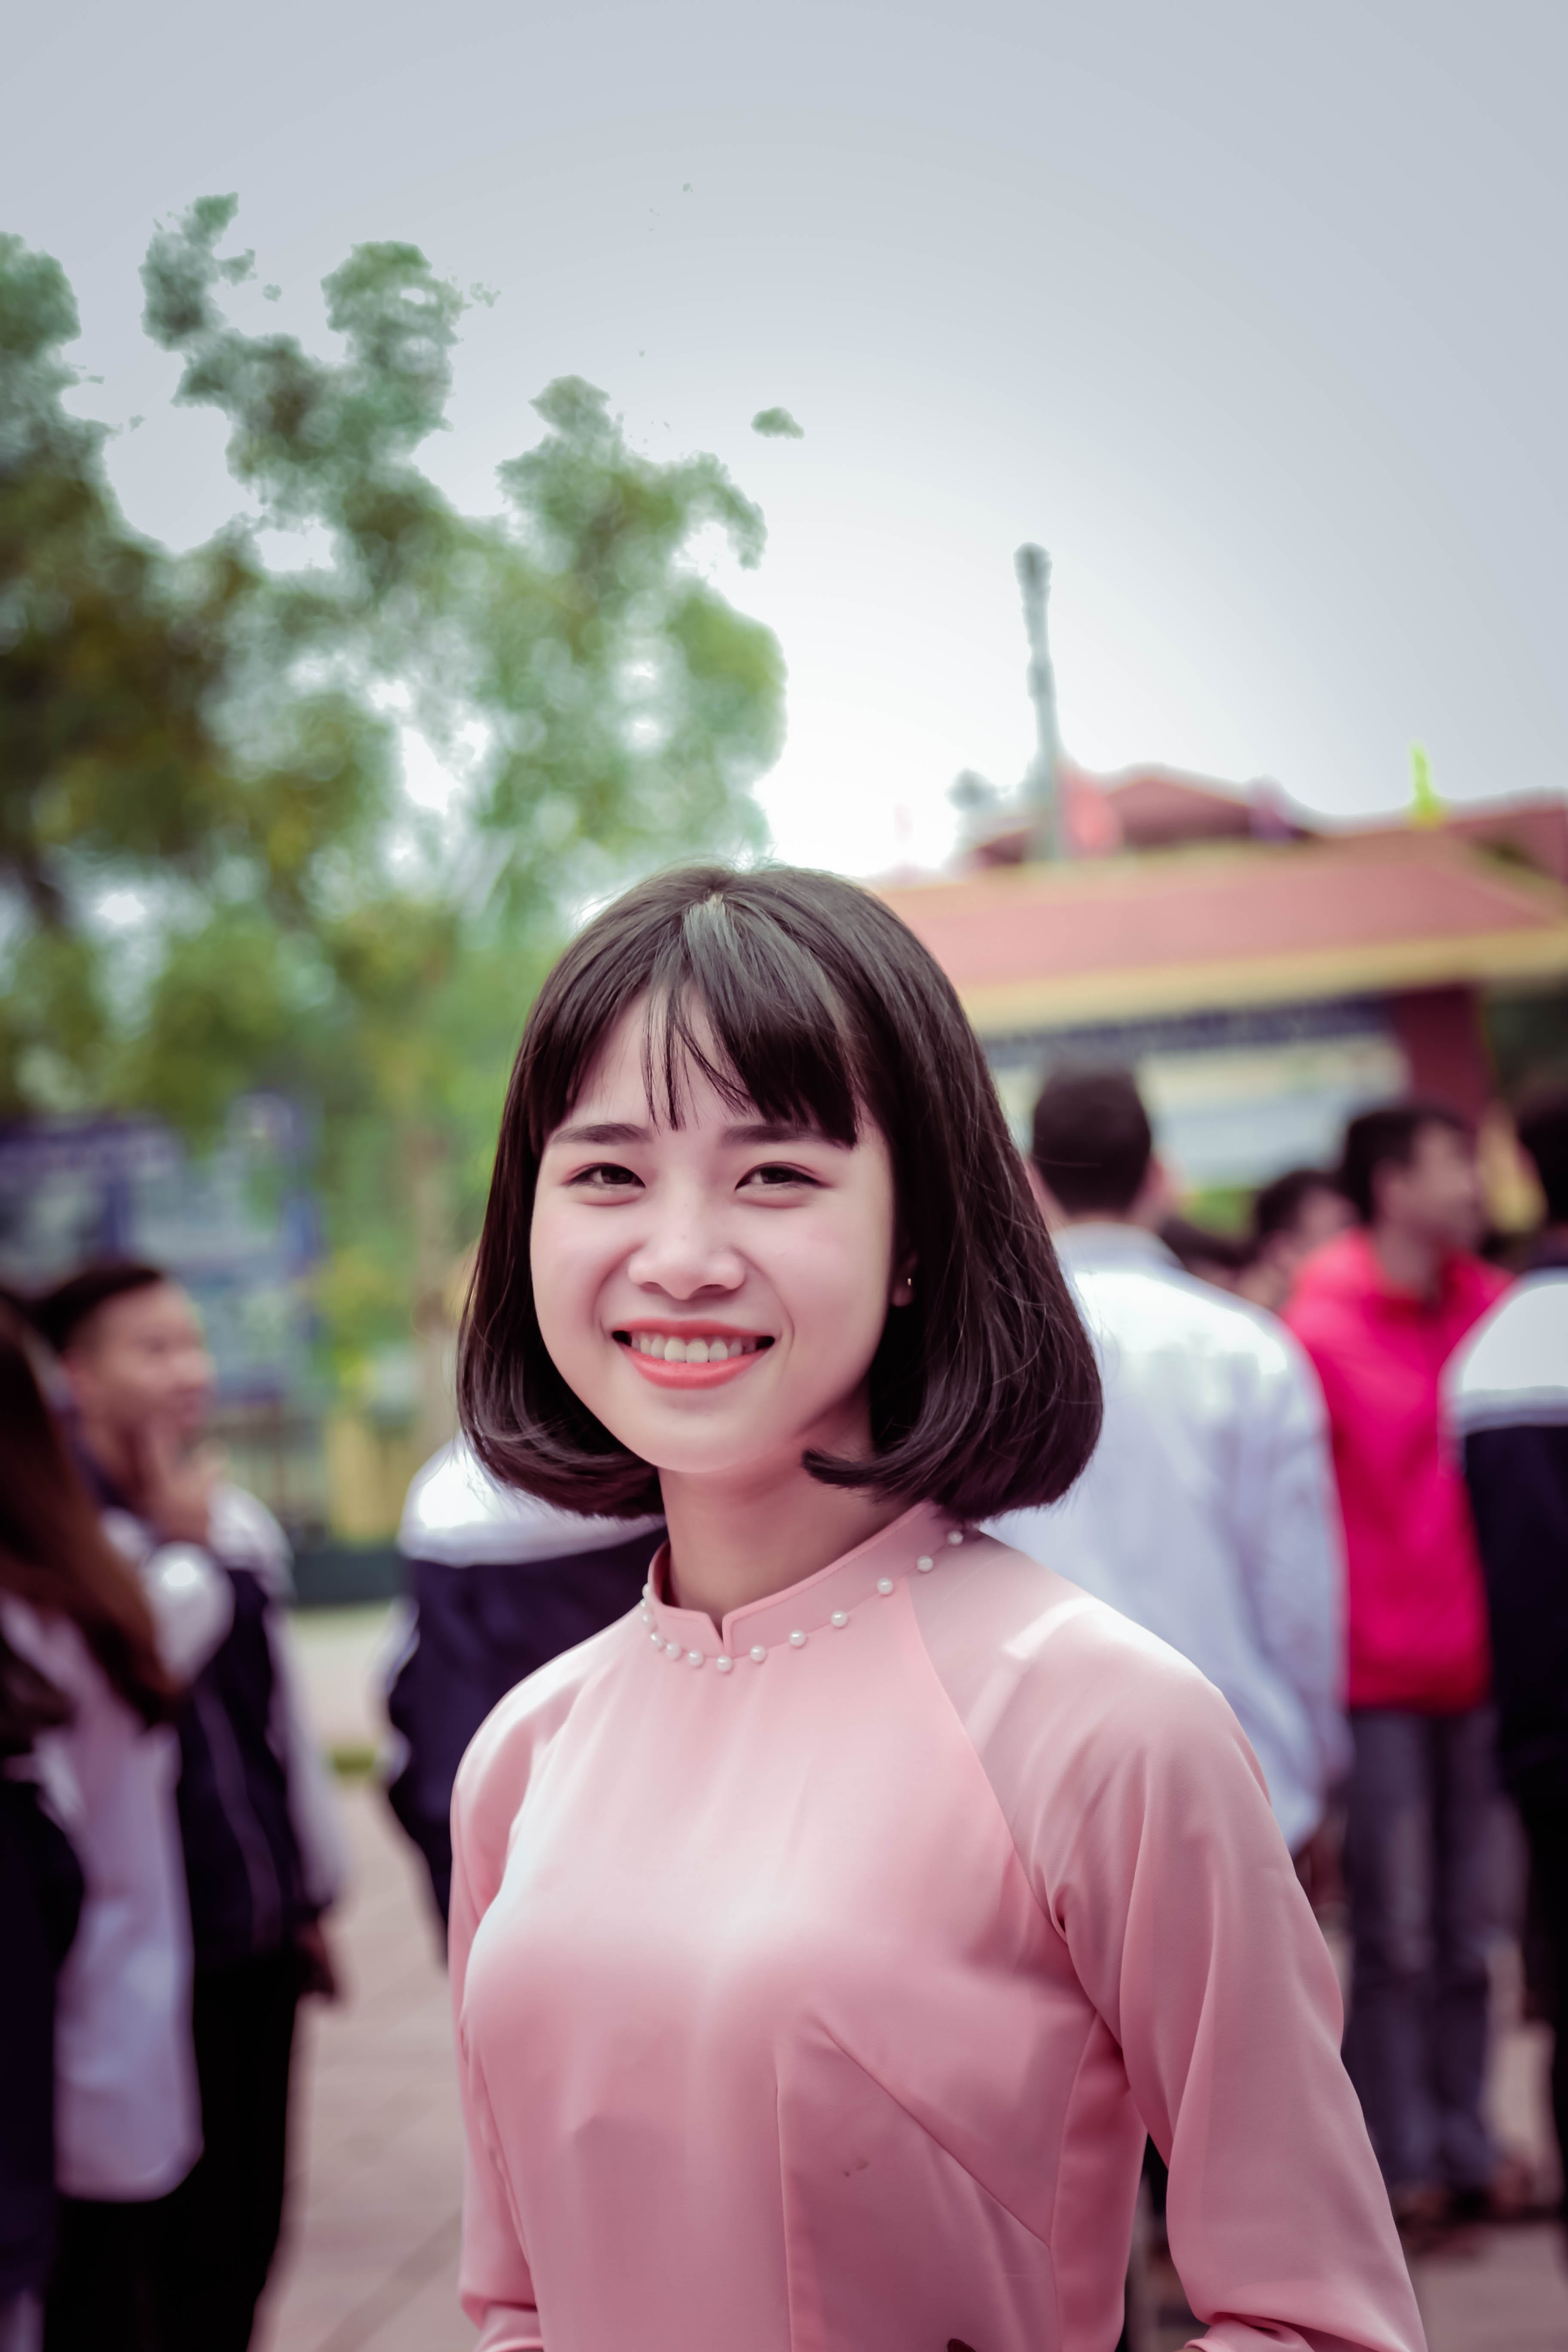 Photography of a Woman in Pink Long-sleeved Top Smiling